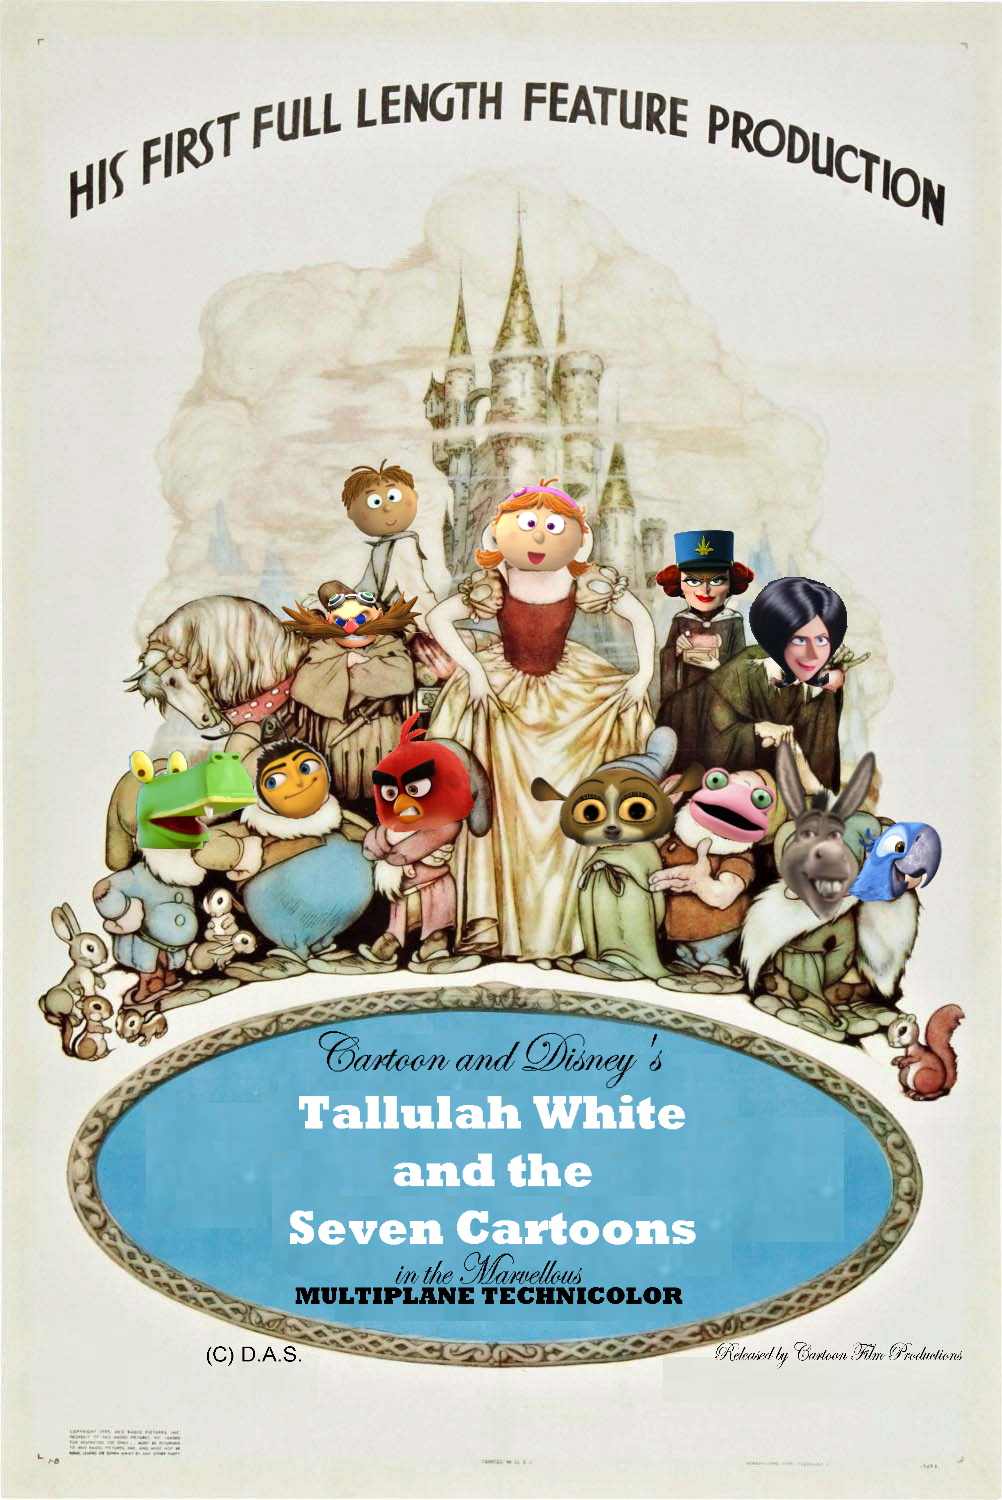 Tallulah White and the Seven Cartoons